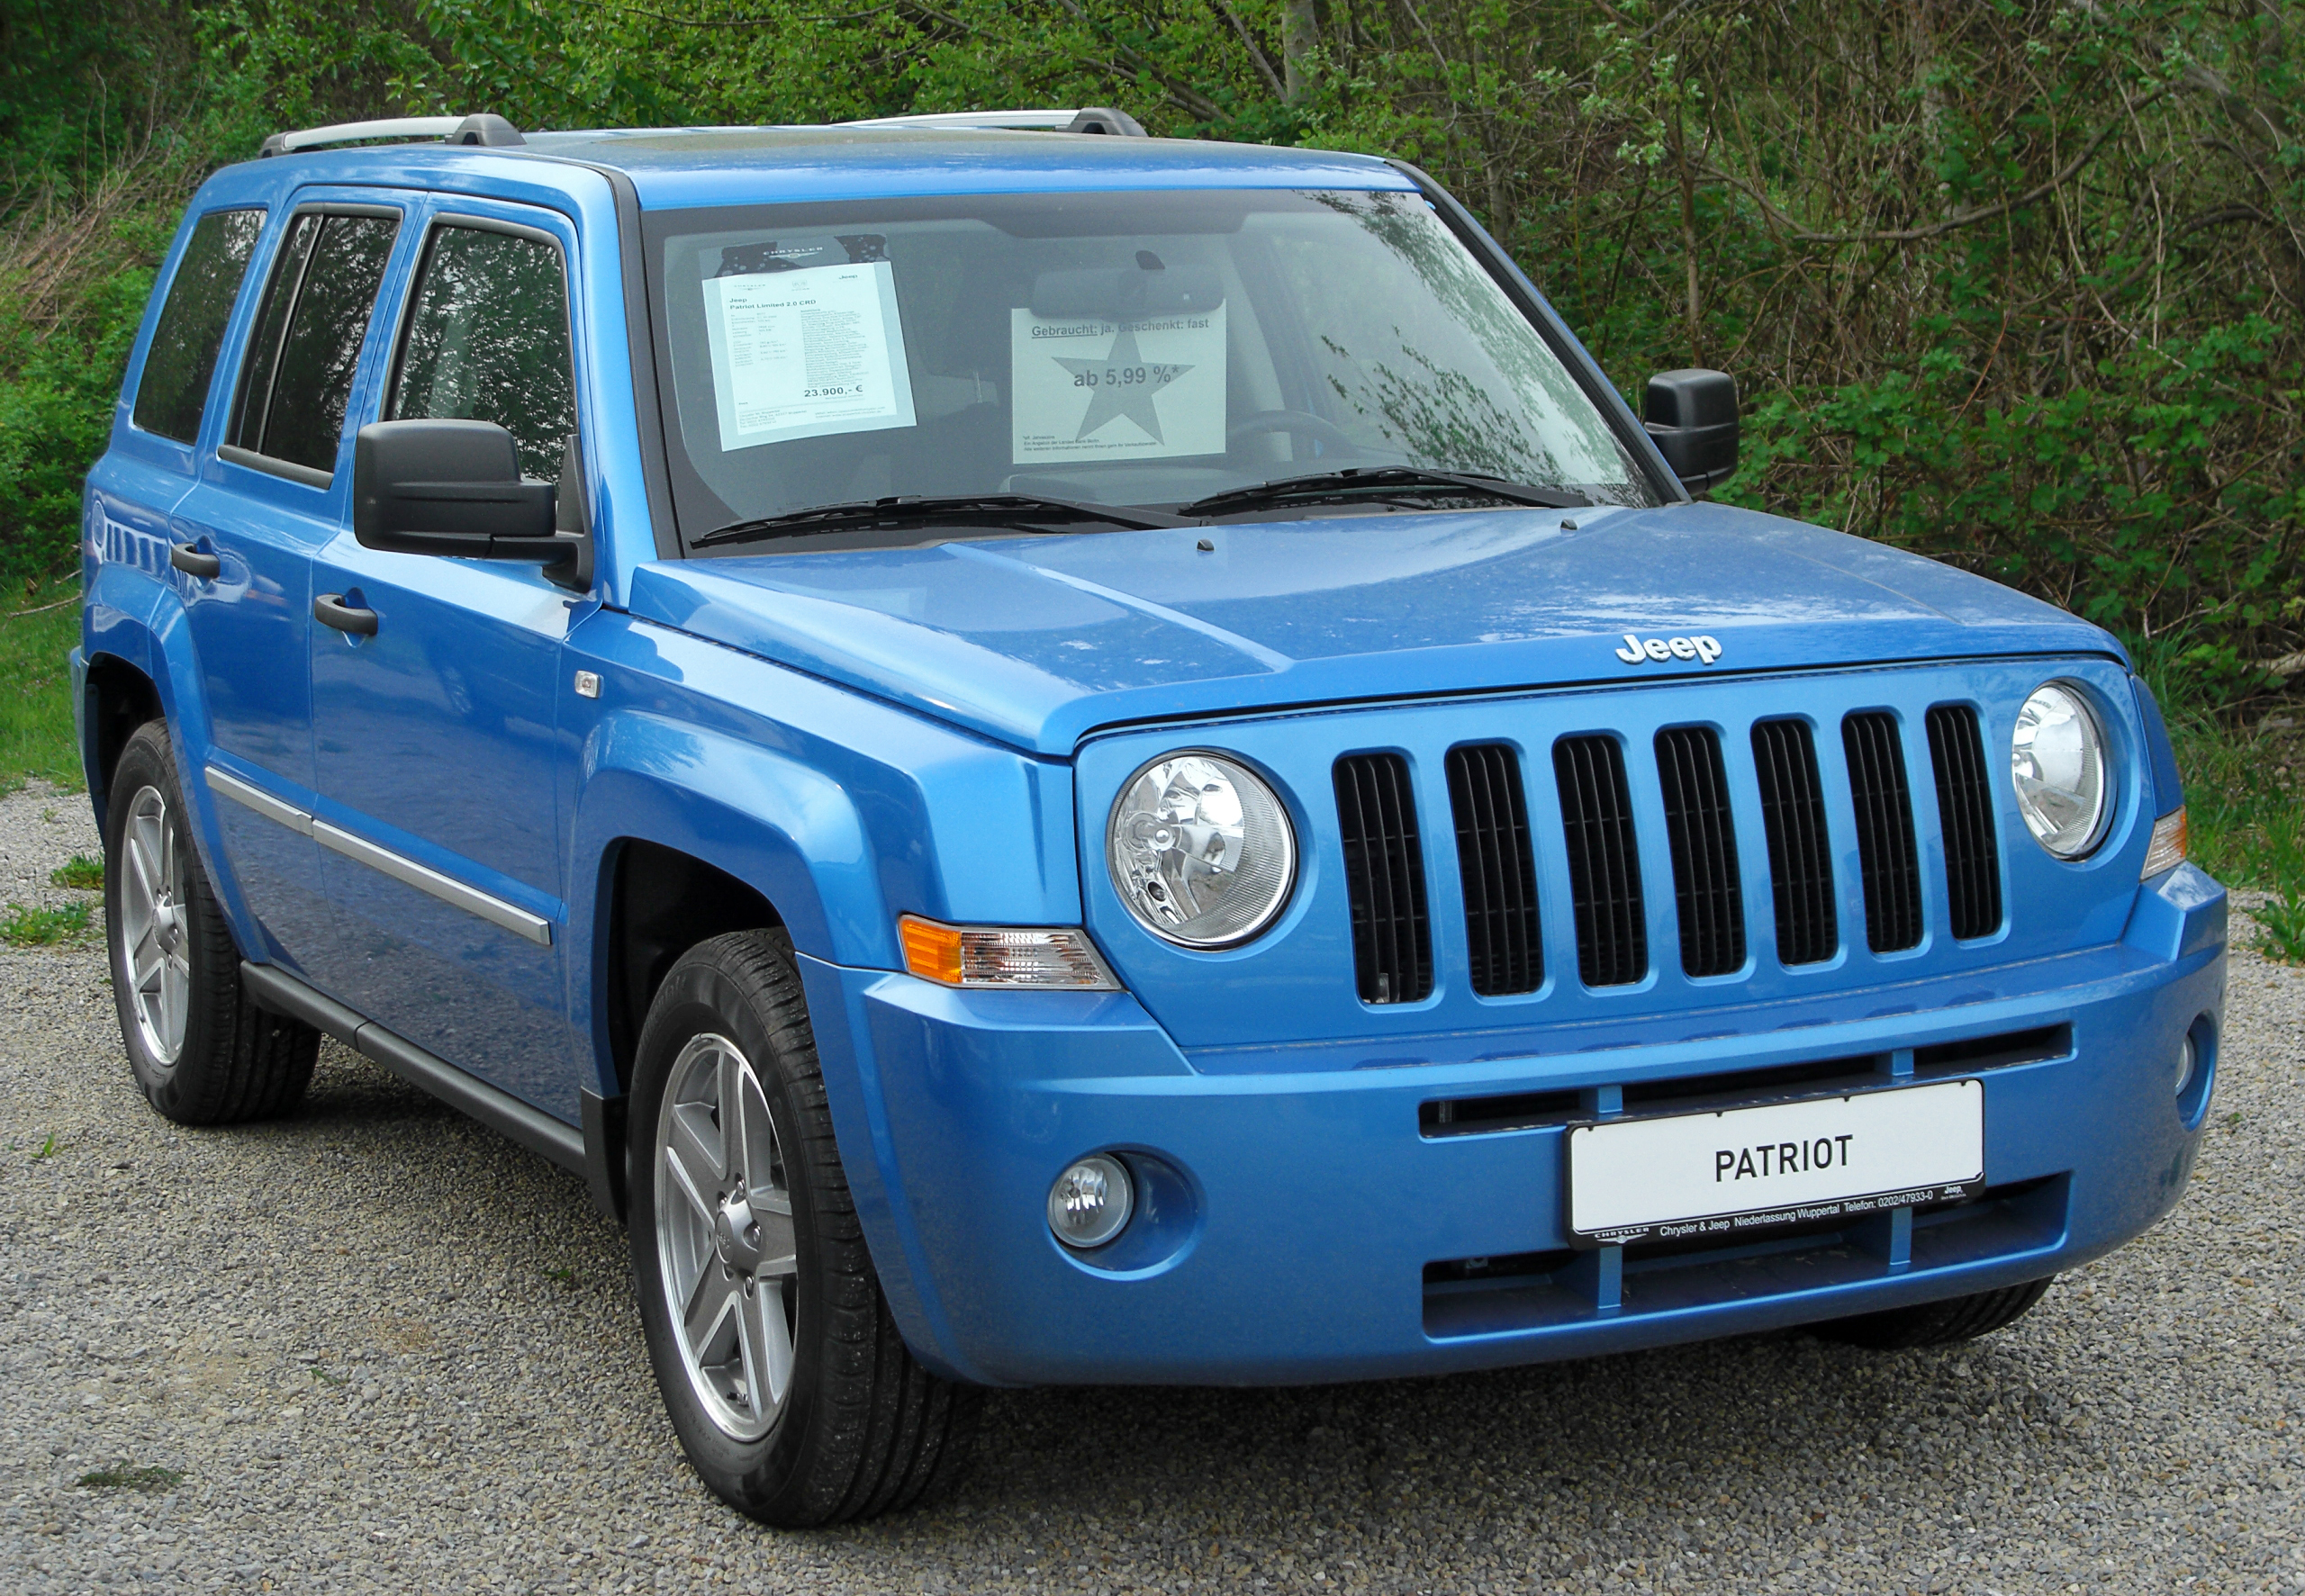 file:jeep patriot limited 2.0 crd front 20100429 - wikimedia